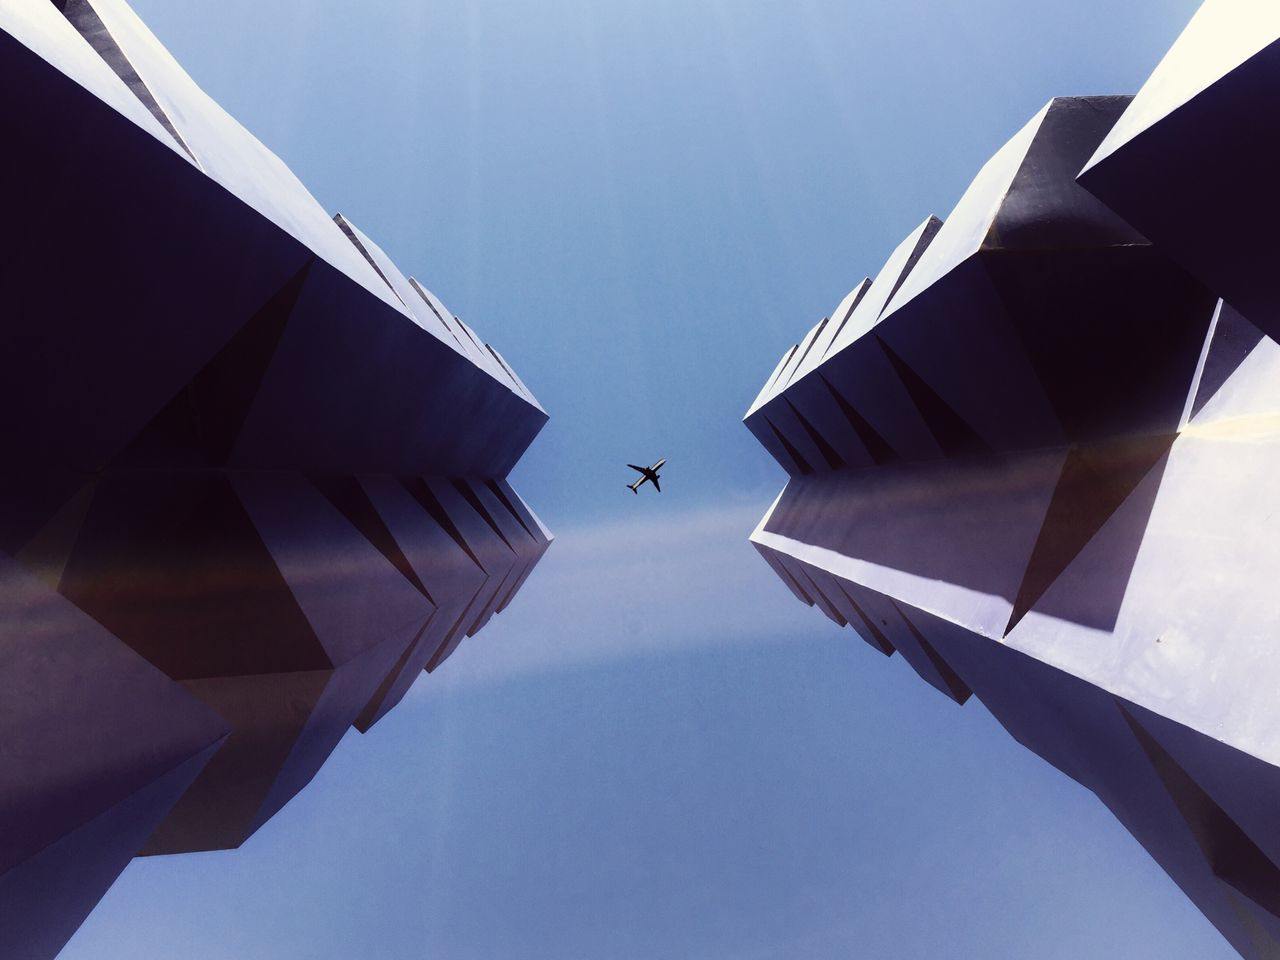 Go Back. TheMinimals (less Edit Juxt Photography) Shootermag EyeEm Best Shots Minimalobsession AMPt Community Minimalism Showing Imperfection Blue Wave The Architect - 2016 EyeEm Awards Fine Art Photography Pivotal Ideas